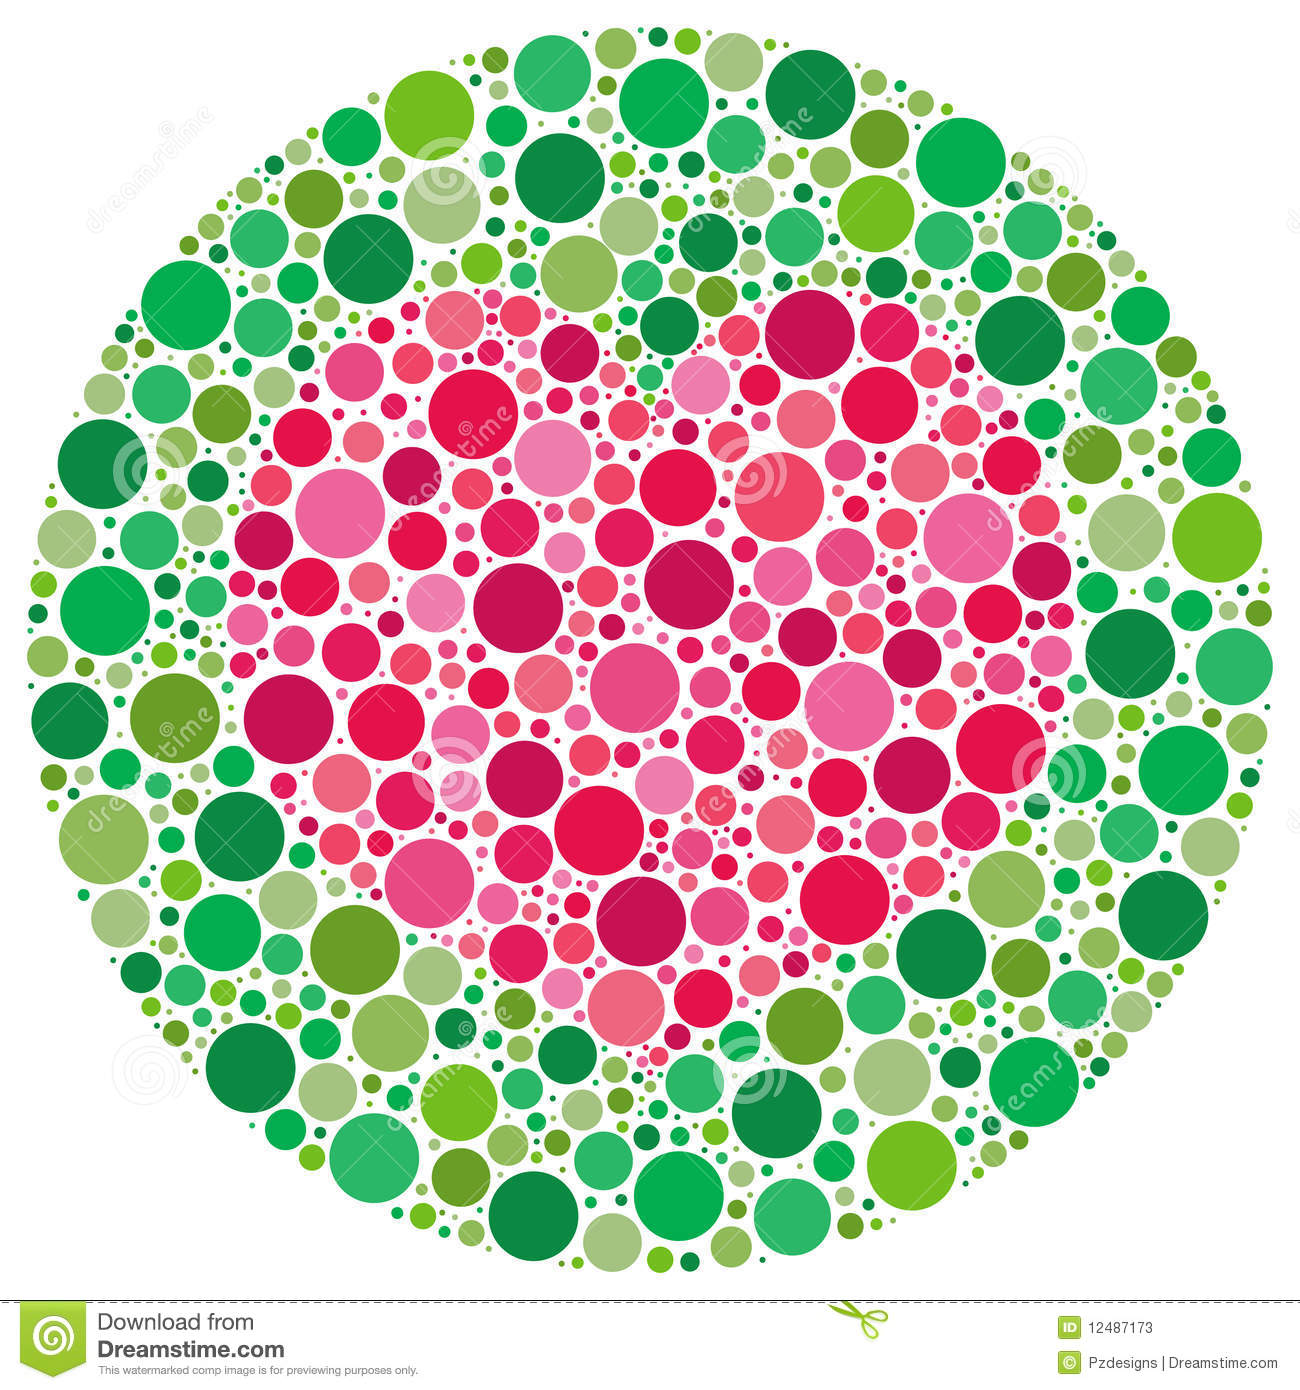 My Love is Colour Blind stock vector. Illustration of shapes - 12487173